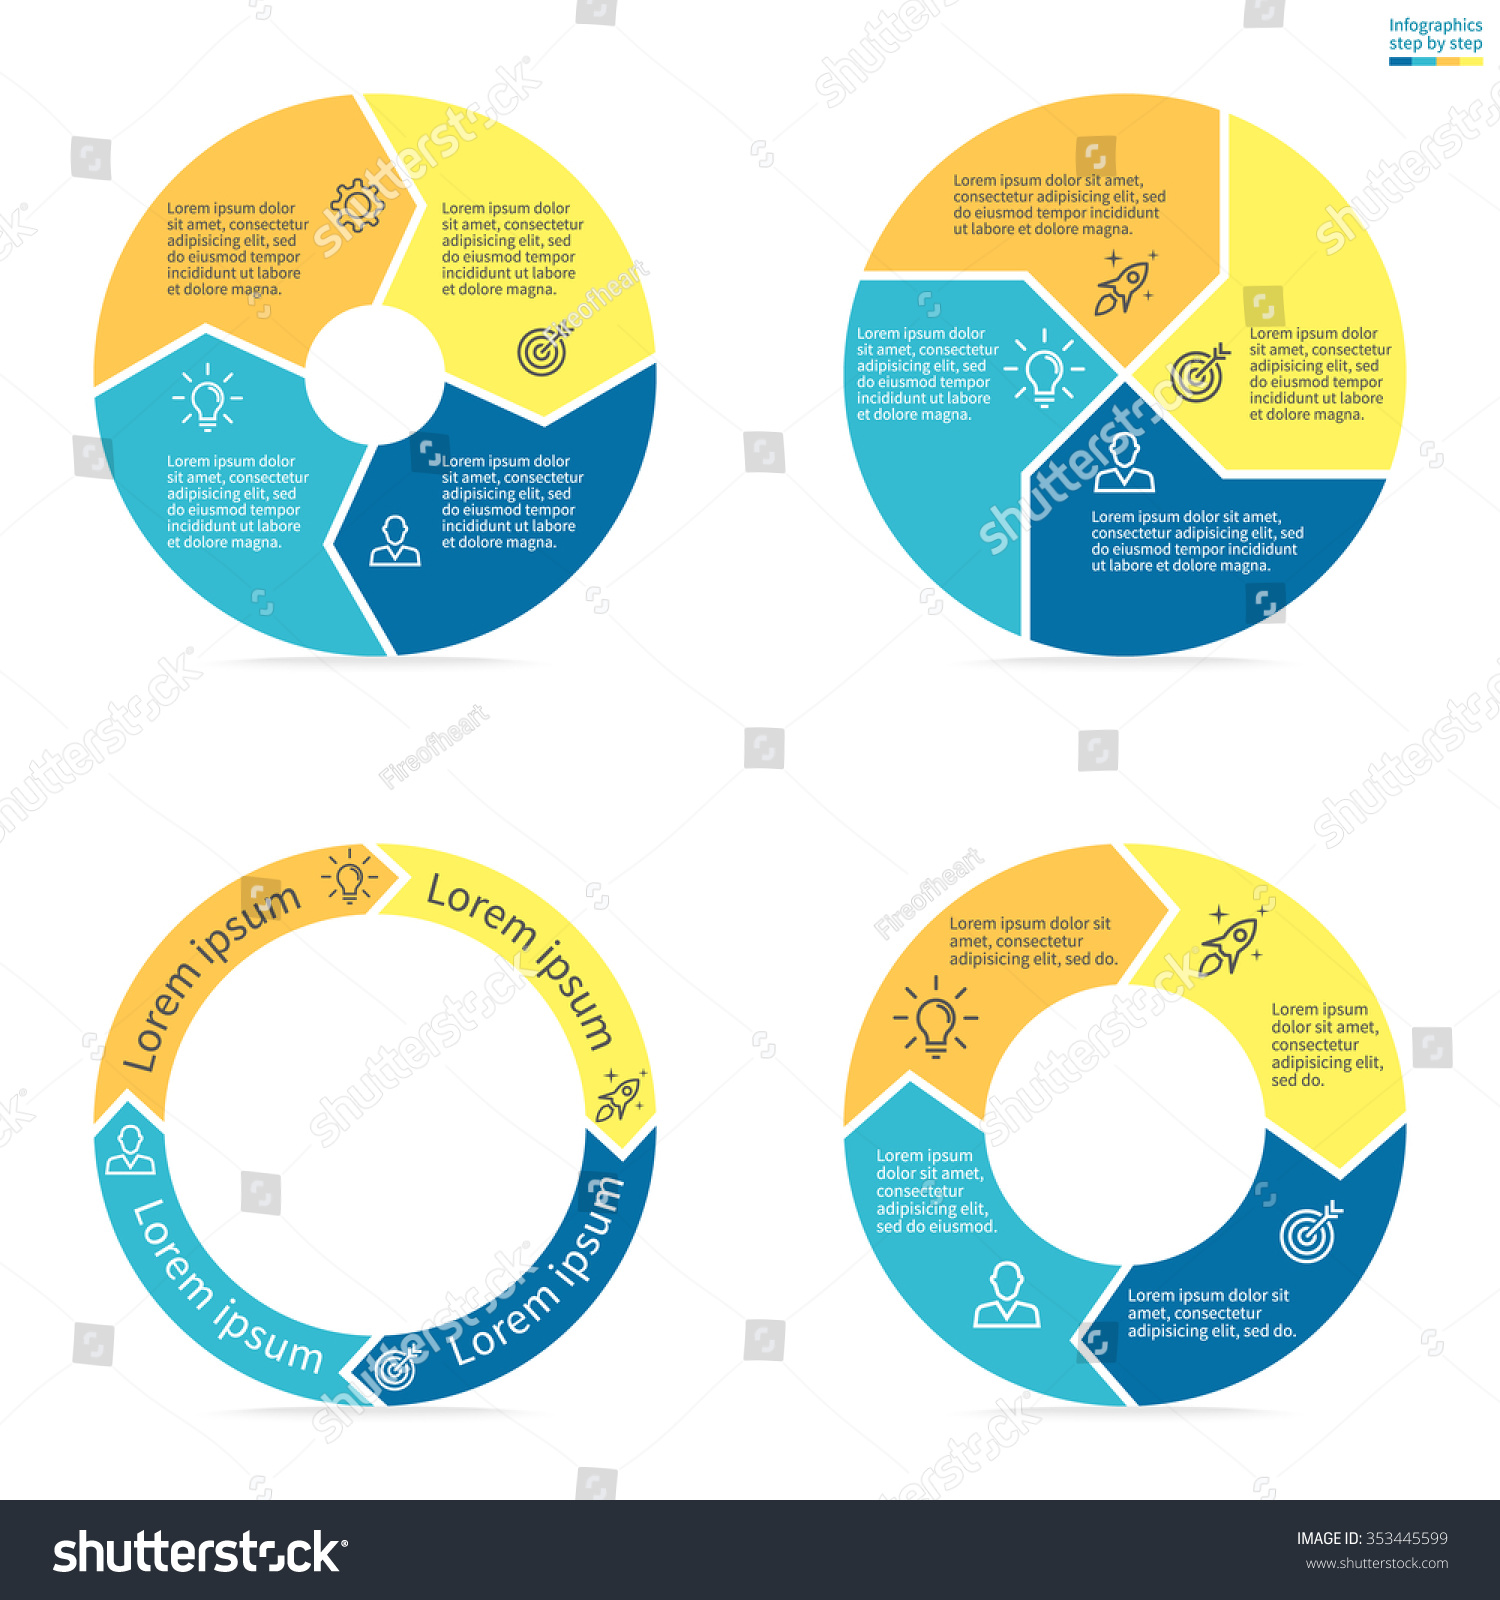 circular infographic colored sections pie charts stock vector